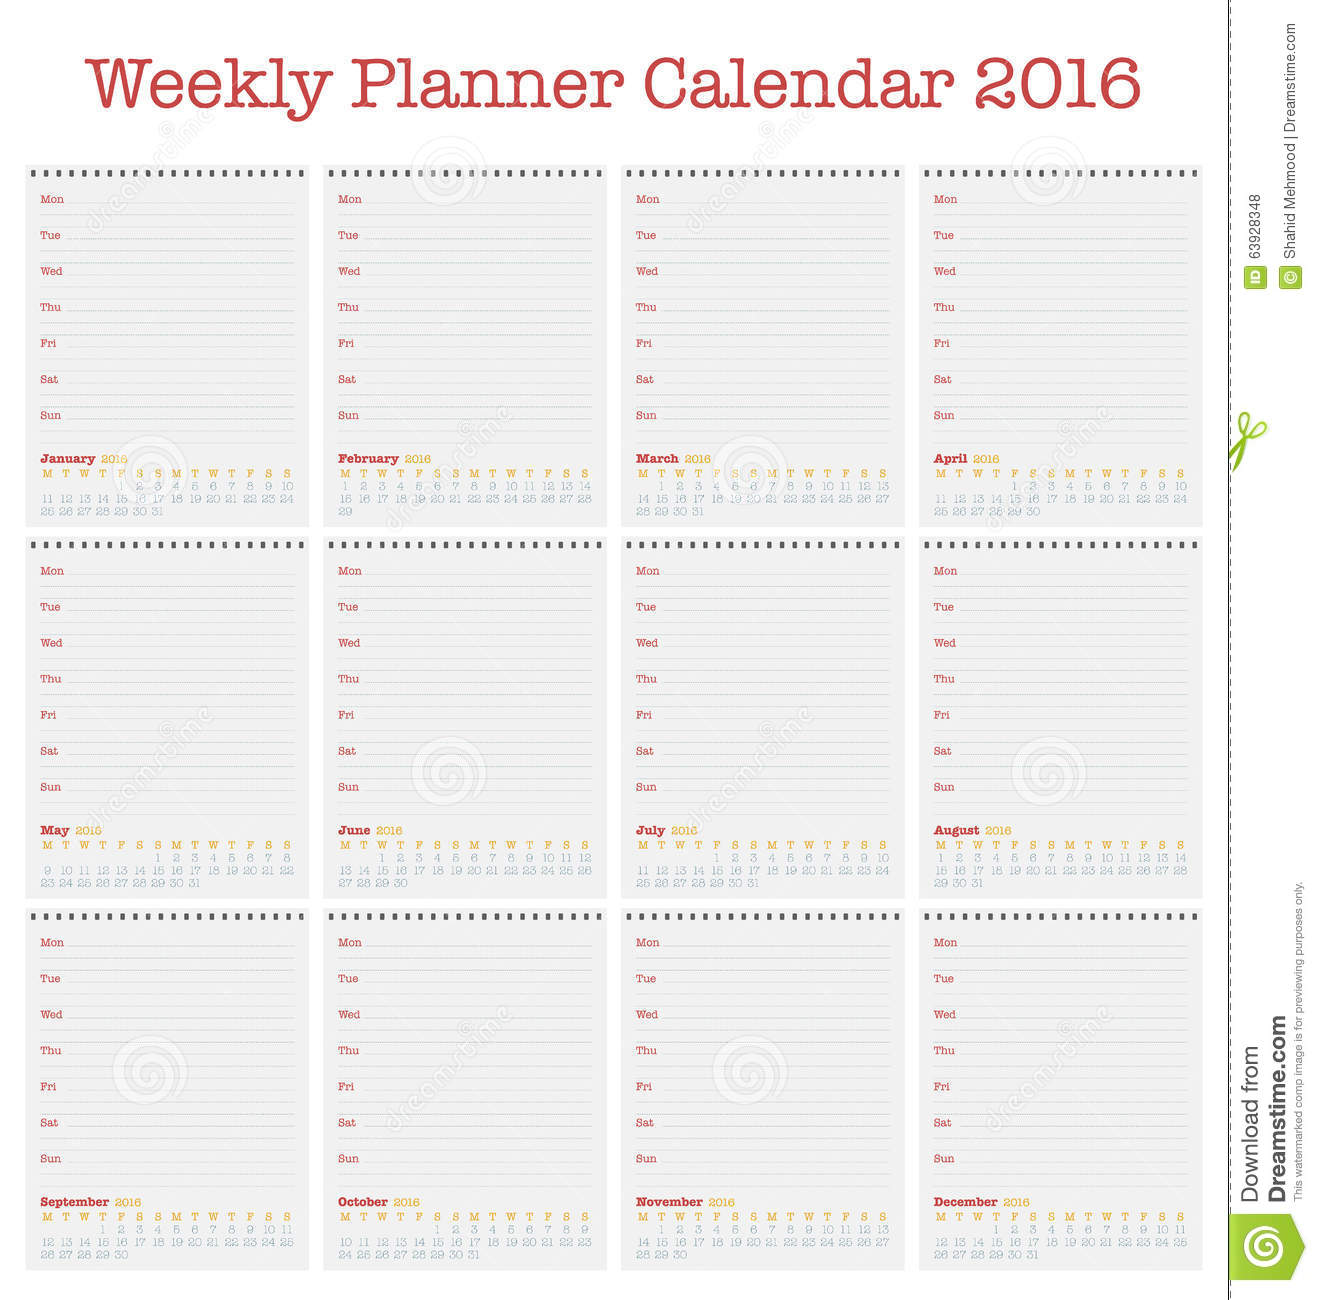 Weekly Year Calendar Template : Calendar for weekly planner year stock